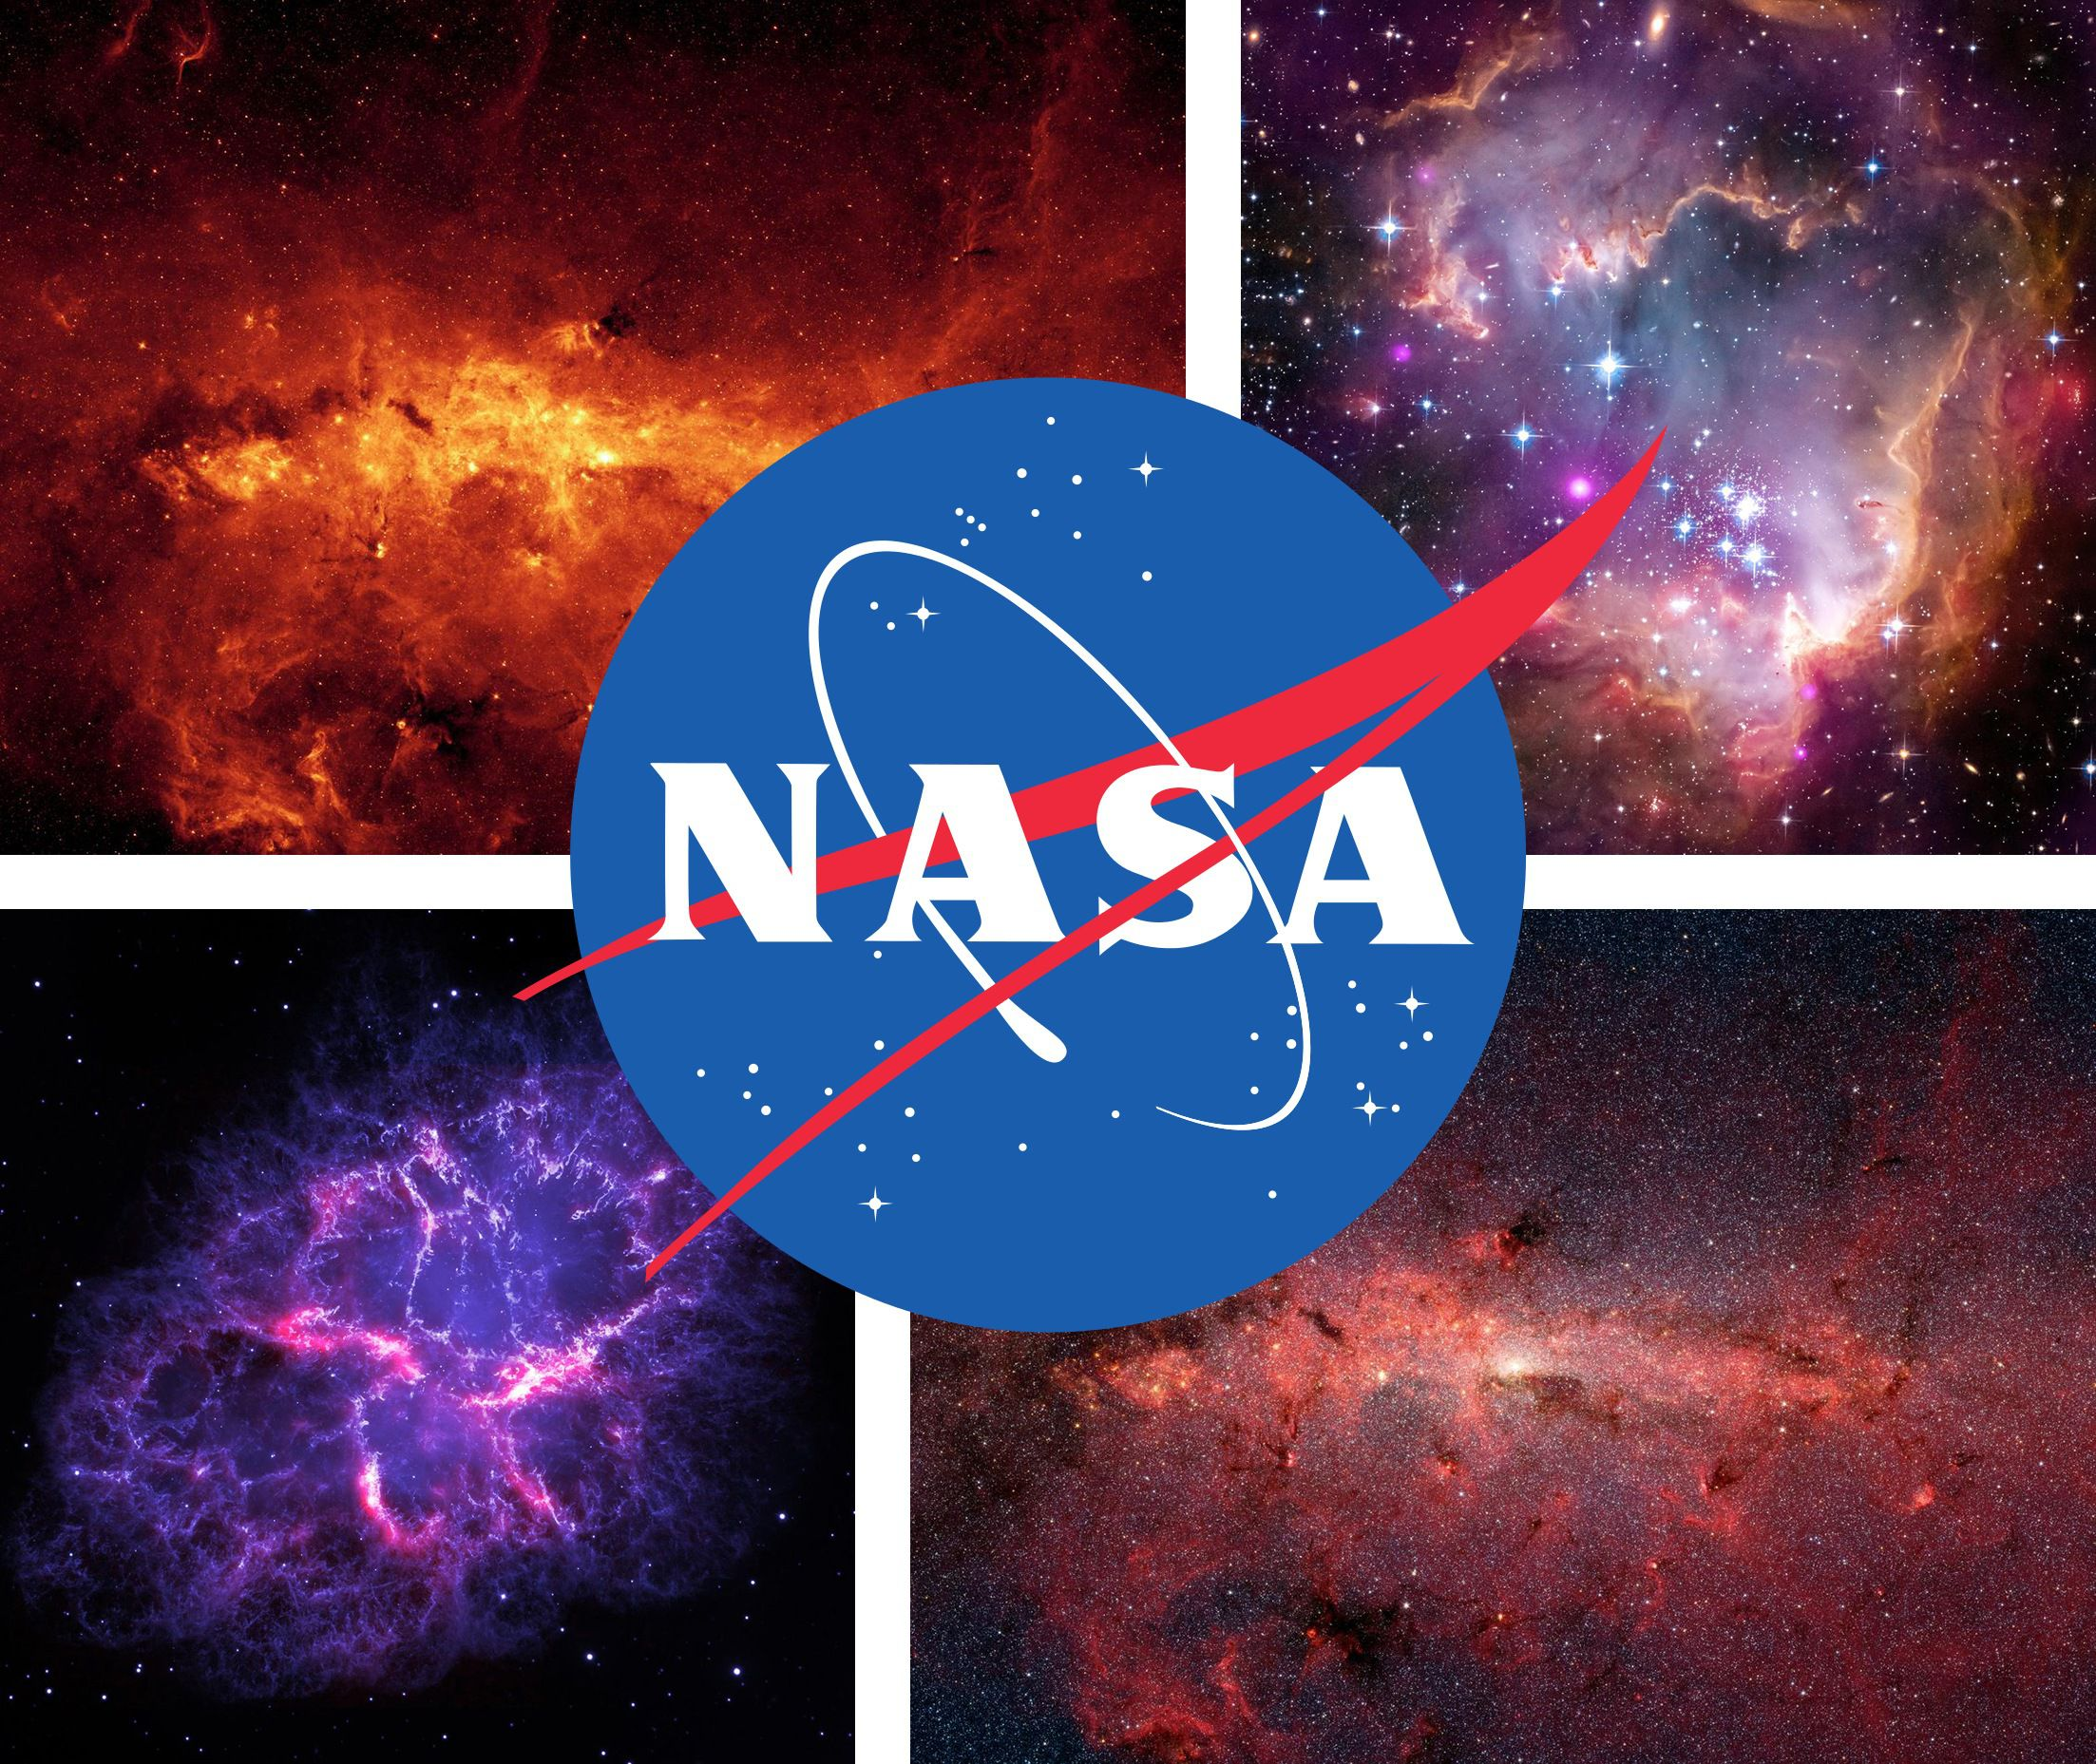 Photo of NASA logo superimposed on photos of space.